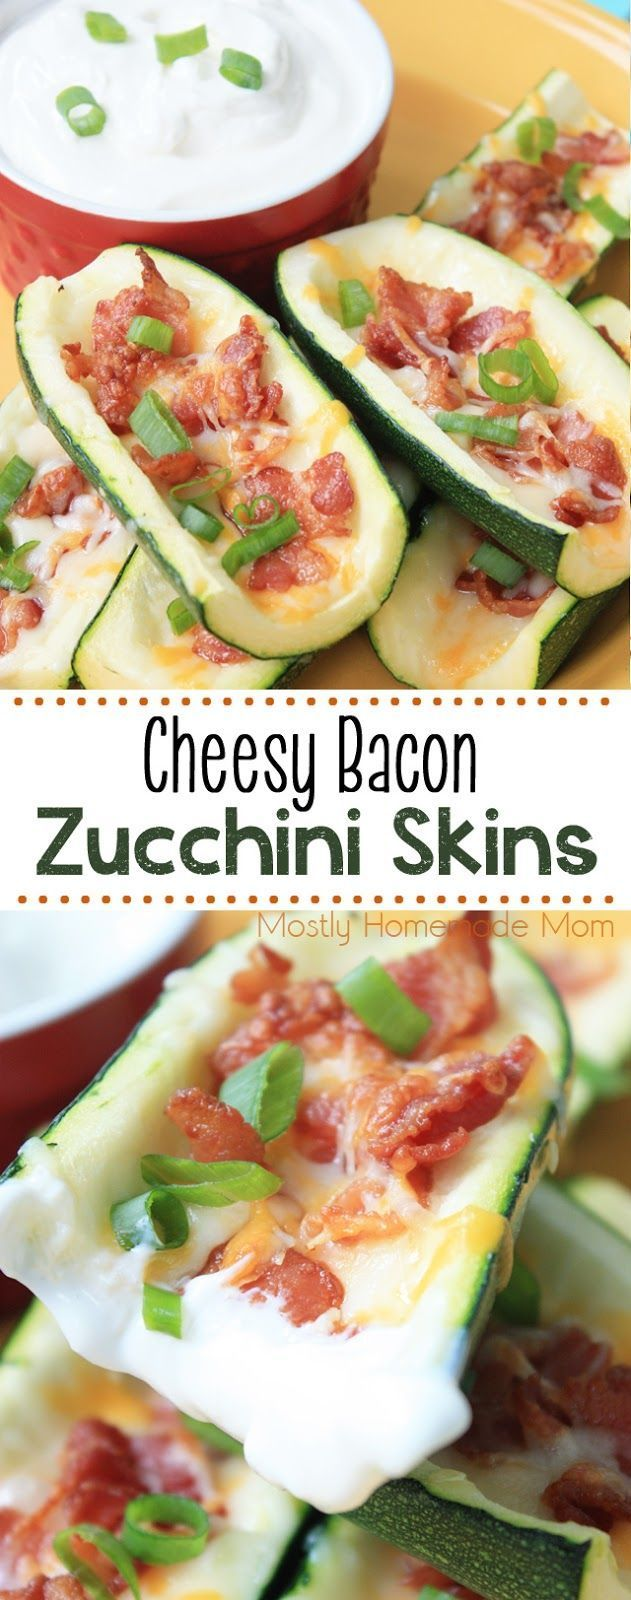 Mostly Homemade Mom: Cheesy Bacon Zucchini Skins